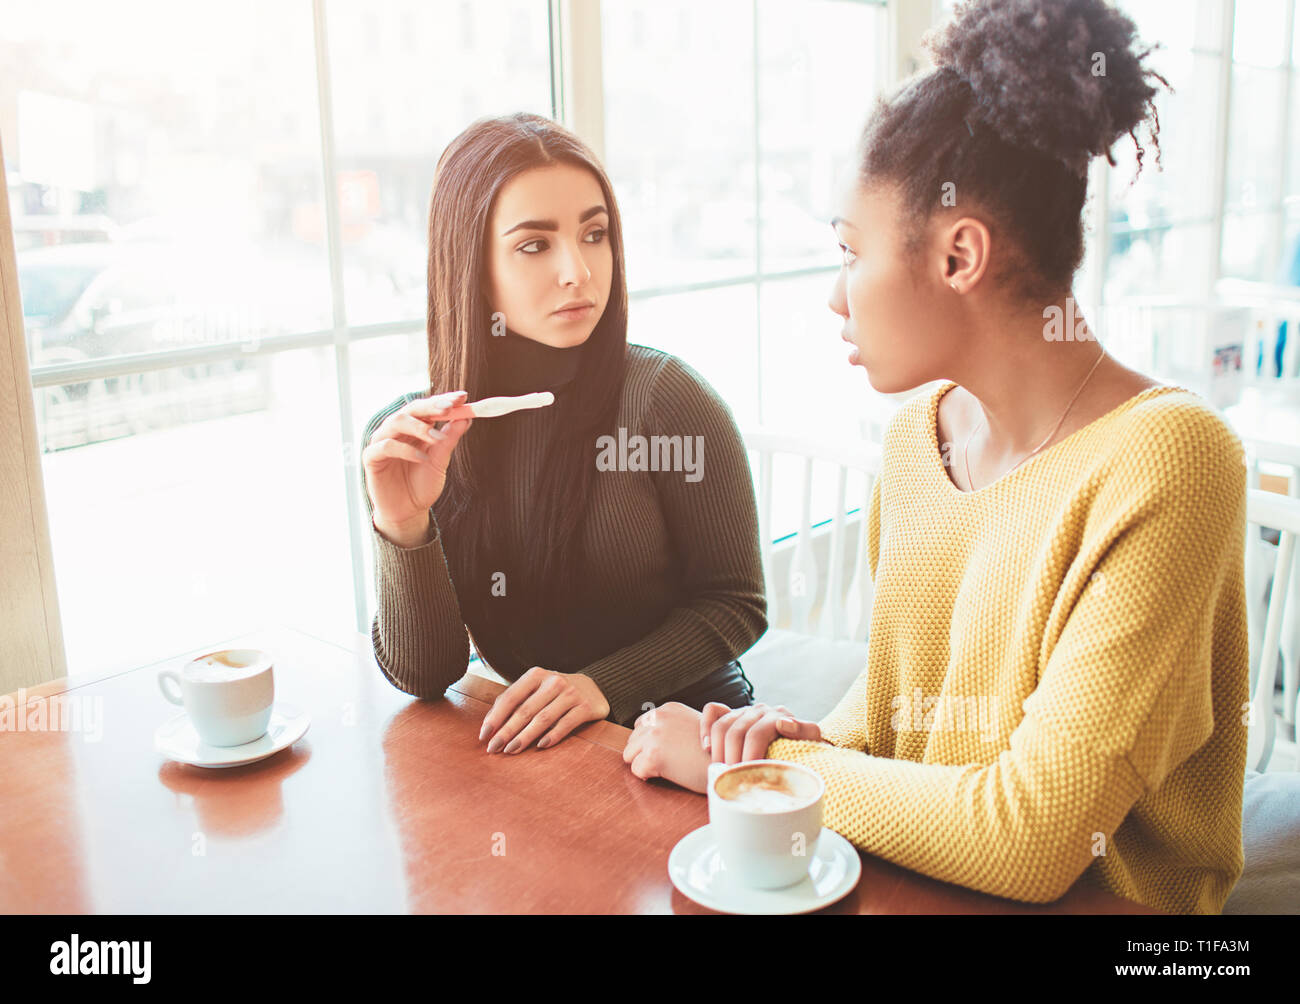 Sad picture of girls sitting. One of them is holding a pregnancy test that shows she will soon become a young mother but girl is not happy about that - Stock Image